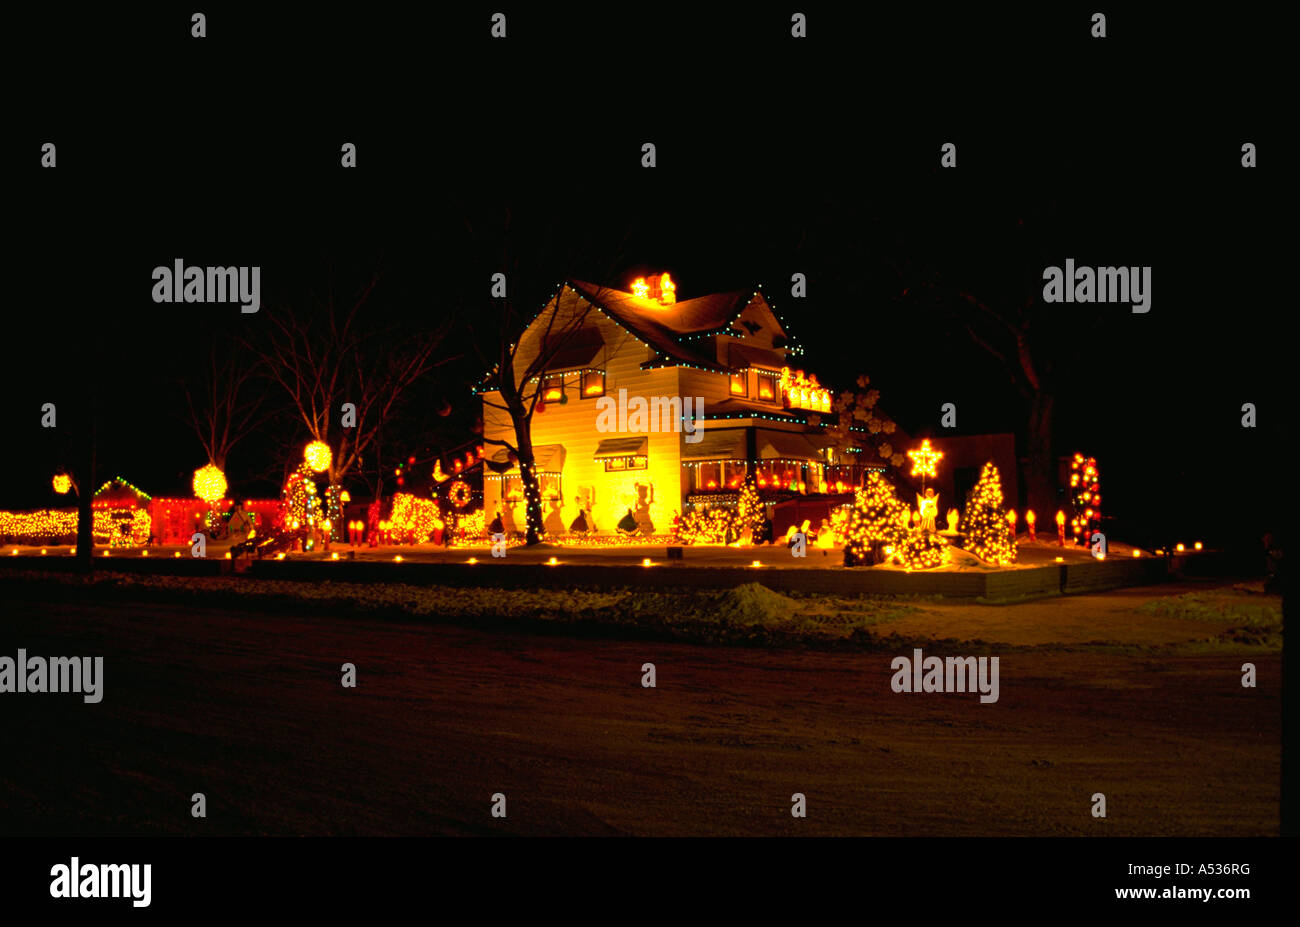 Exterior Of House Decorated With Christmas Lights Minneapolis Stock Photo Royalty Free Image